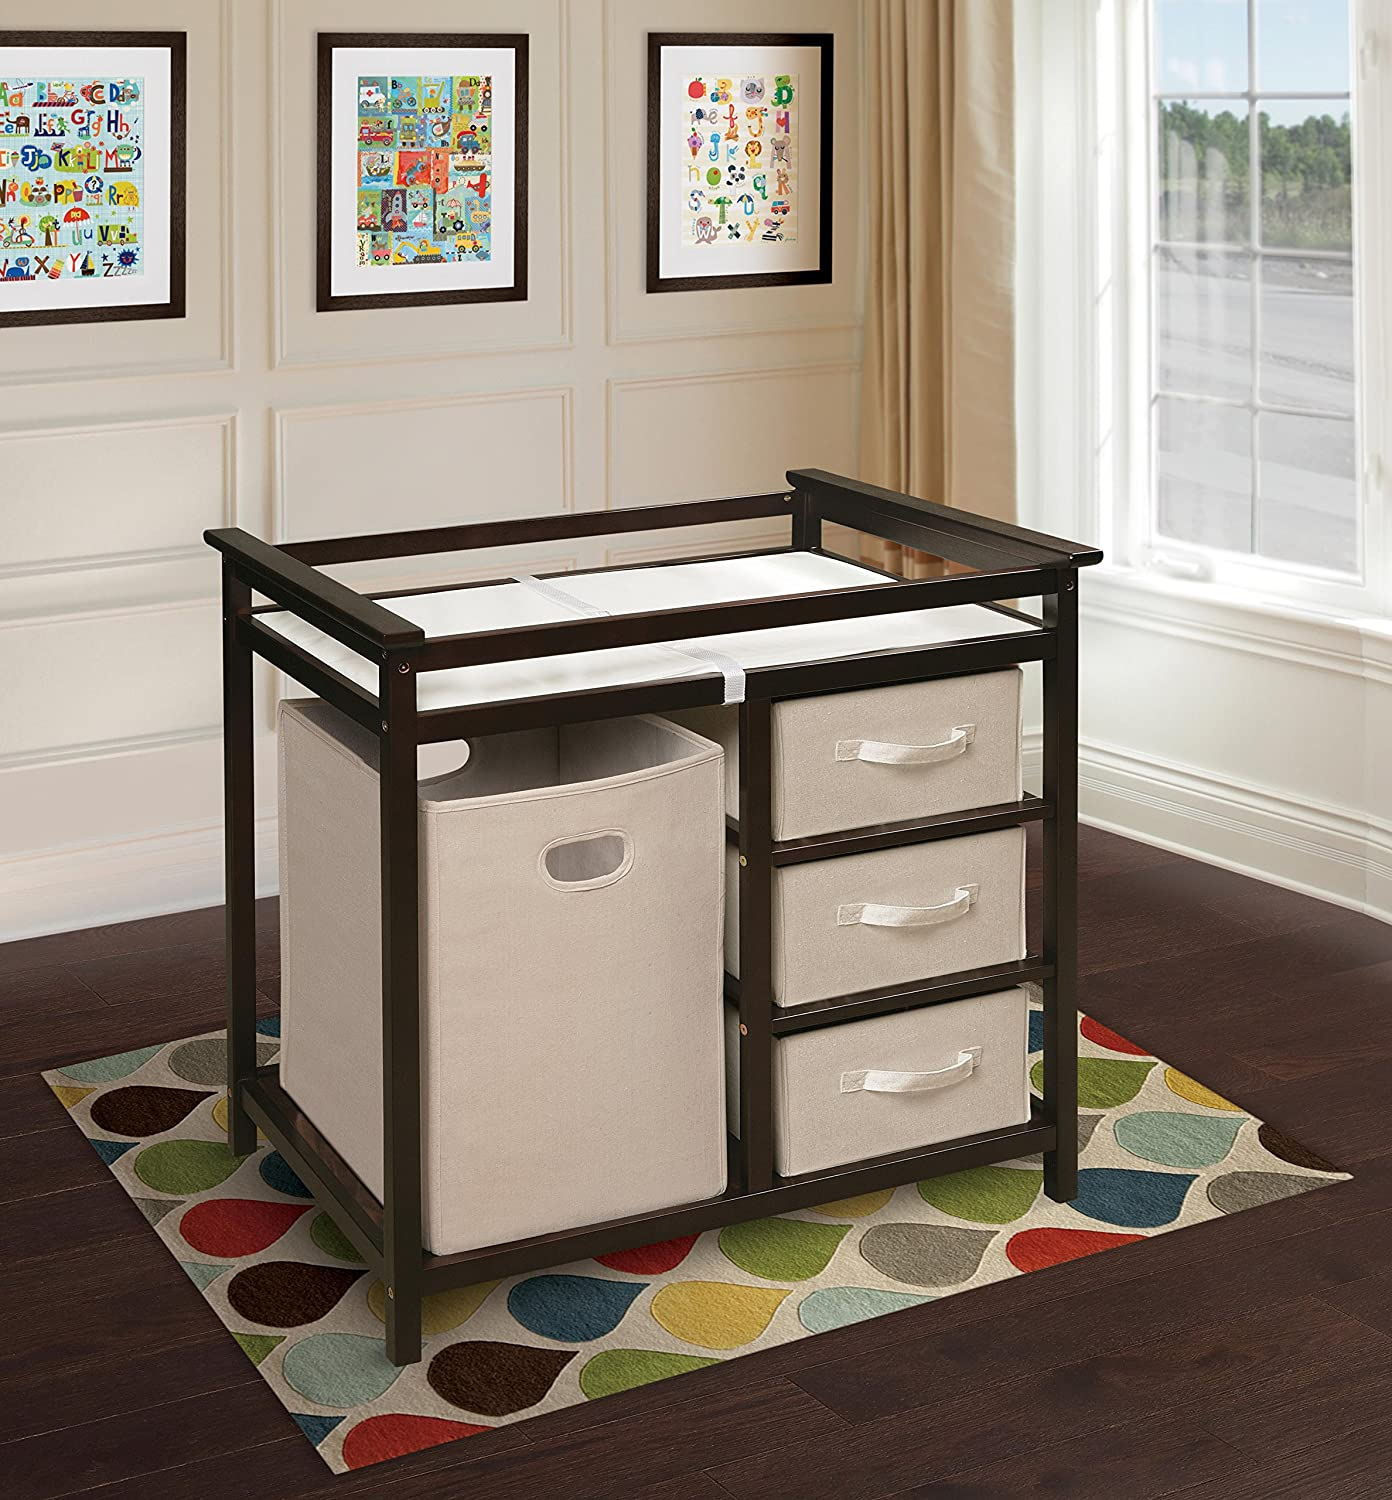 Amazon.com : Badger Basket Modern Changing Table With Hamper/3 Baskets,  Espresso : Baby